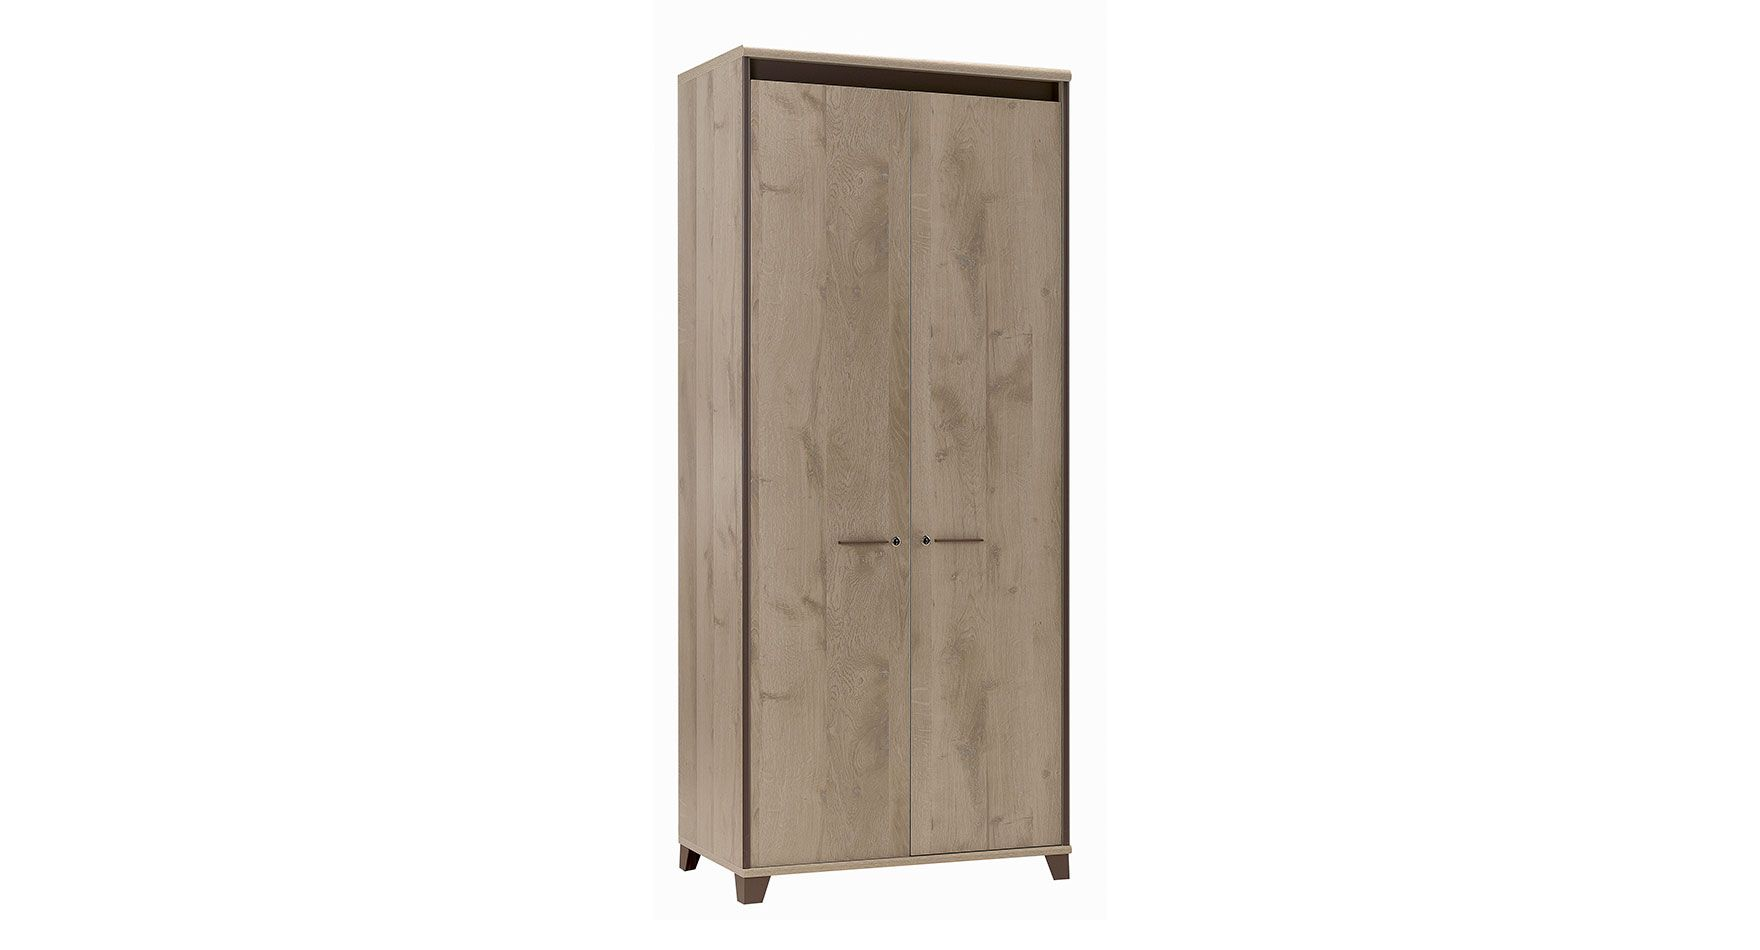 Khmer Furniture Cupboards Wardrobe 2 doors  in Cambodia